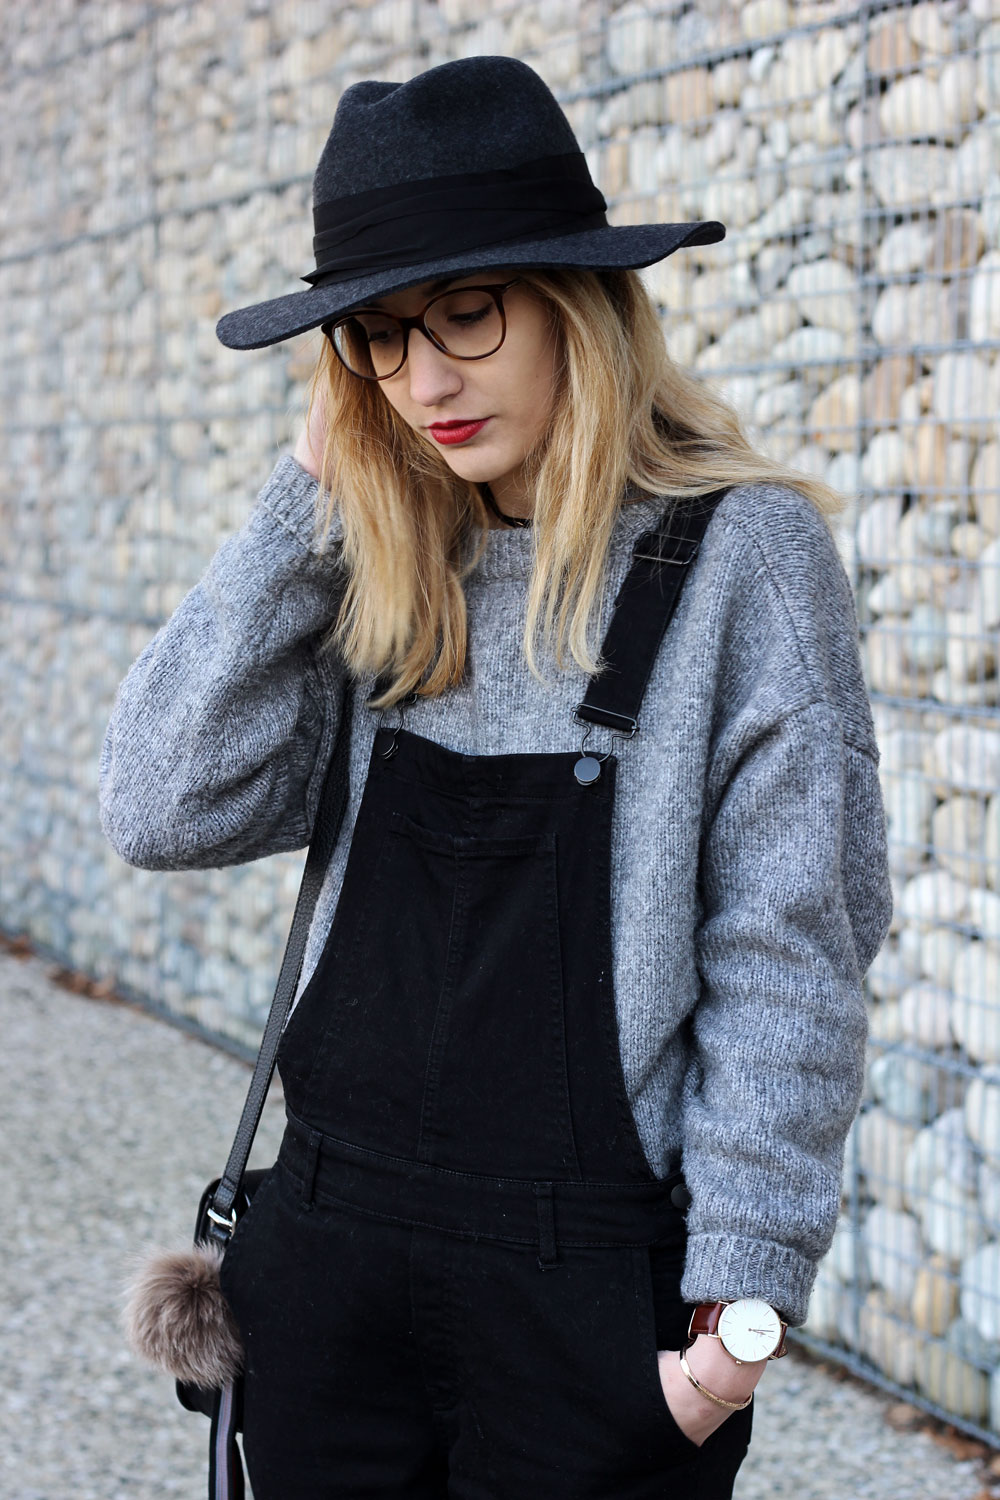 blog-mode-outfit-black-overalls-knit